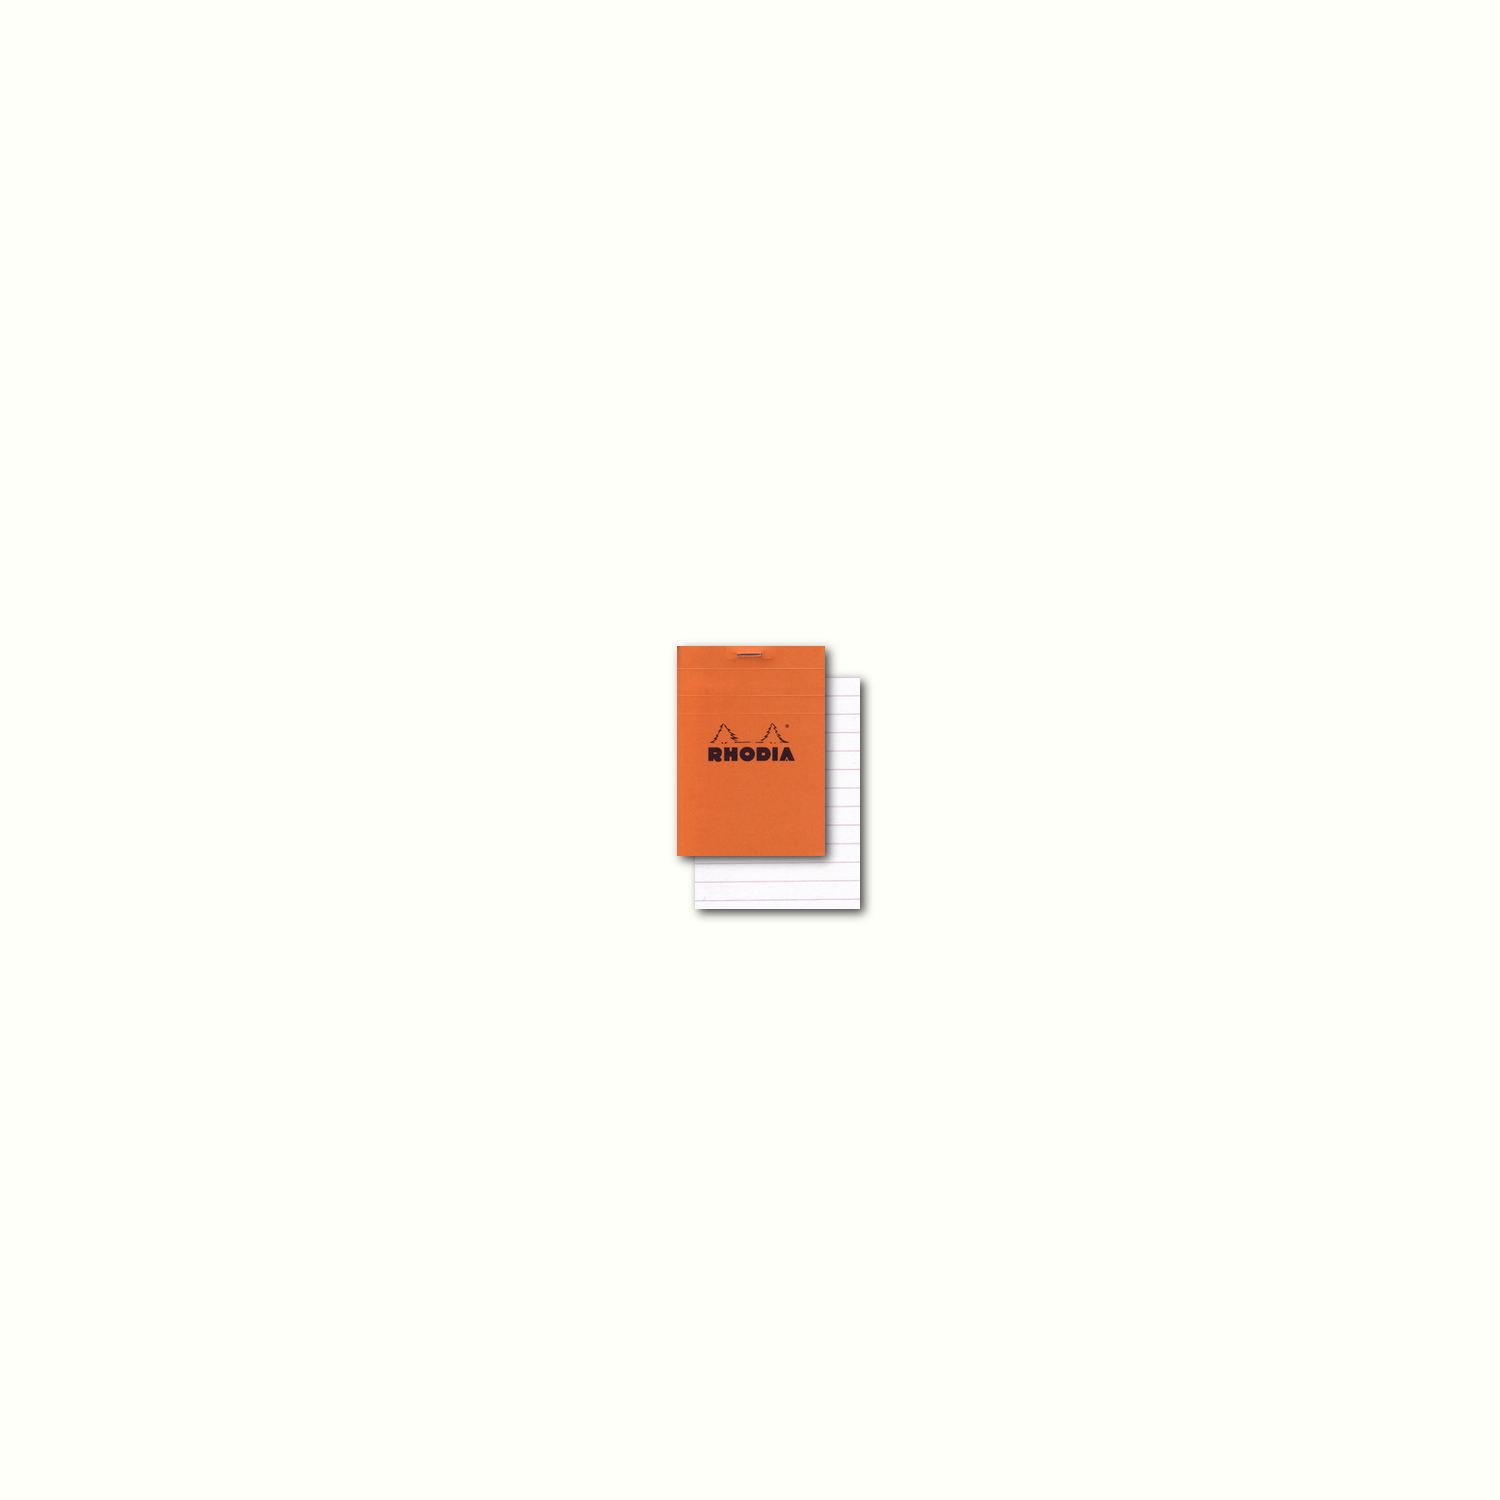 Rhodia Classic Orange Notepad 2X3 Lined